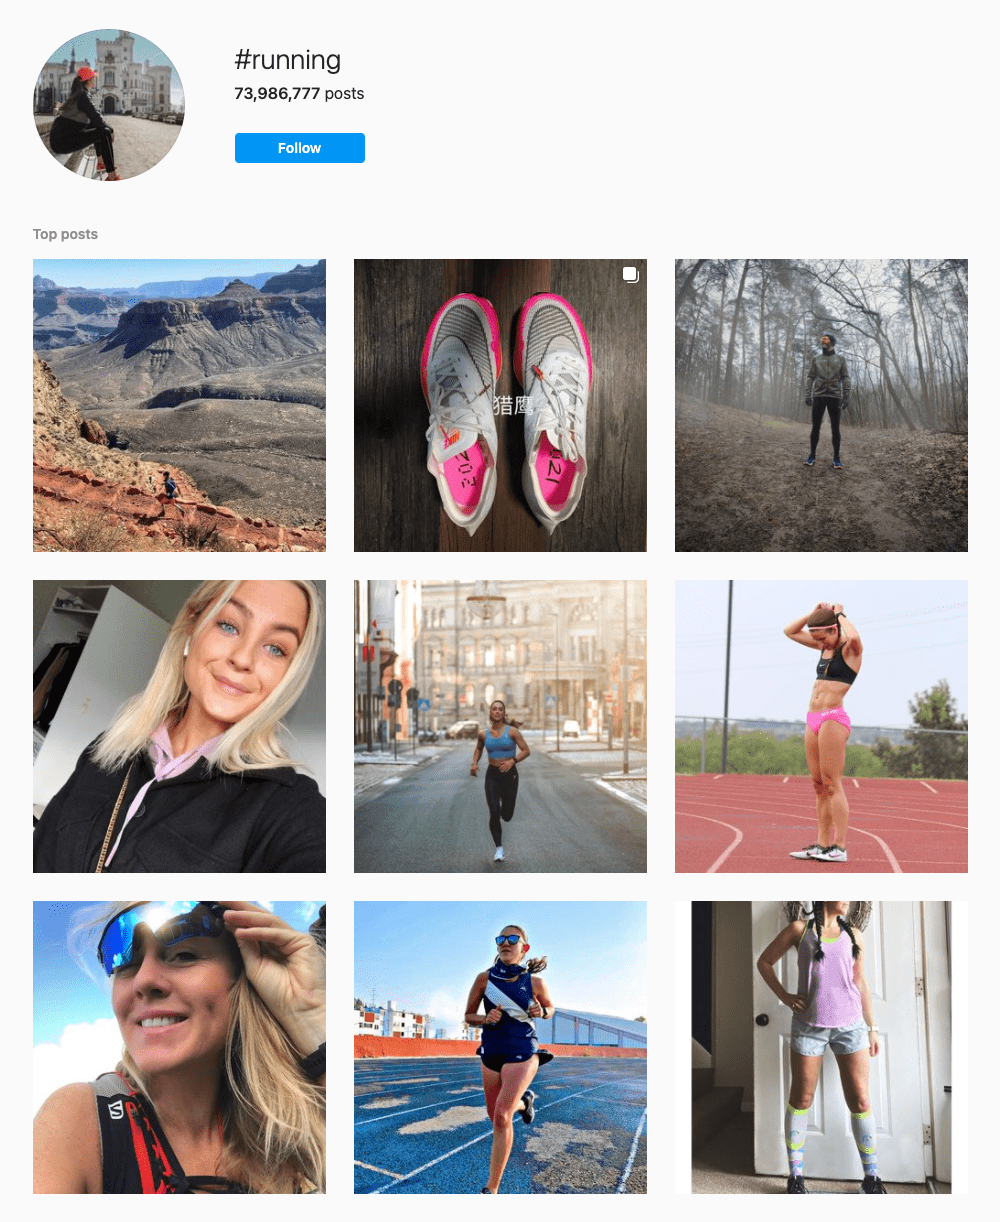 #running Hashtags for Instagram